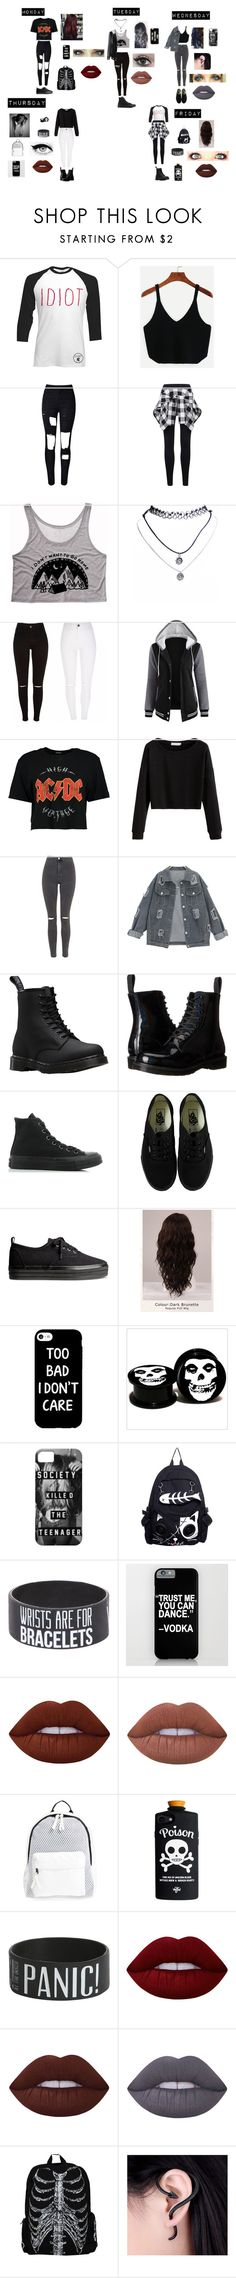 """""""How I Punk Rock"""" by tomlinsons-unicorn18 ❤ liked on Polyvore featuring WithChic, Wet Seal, Boohoo, Topshop, Dr. Martens, Converse, Vans, H&M, WigYouUp and Lime Crime"""